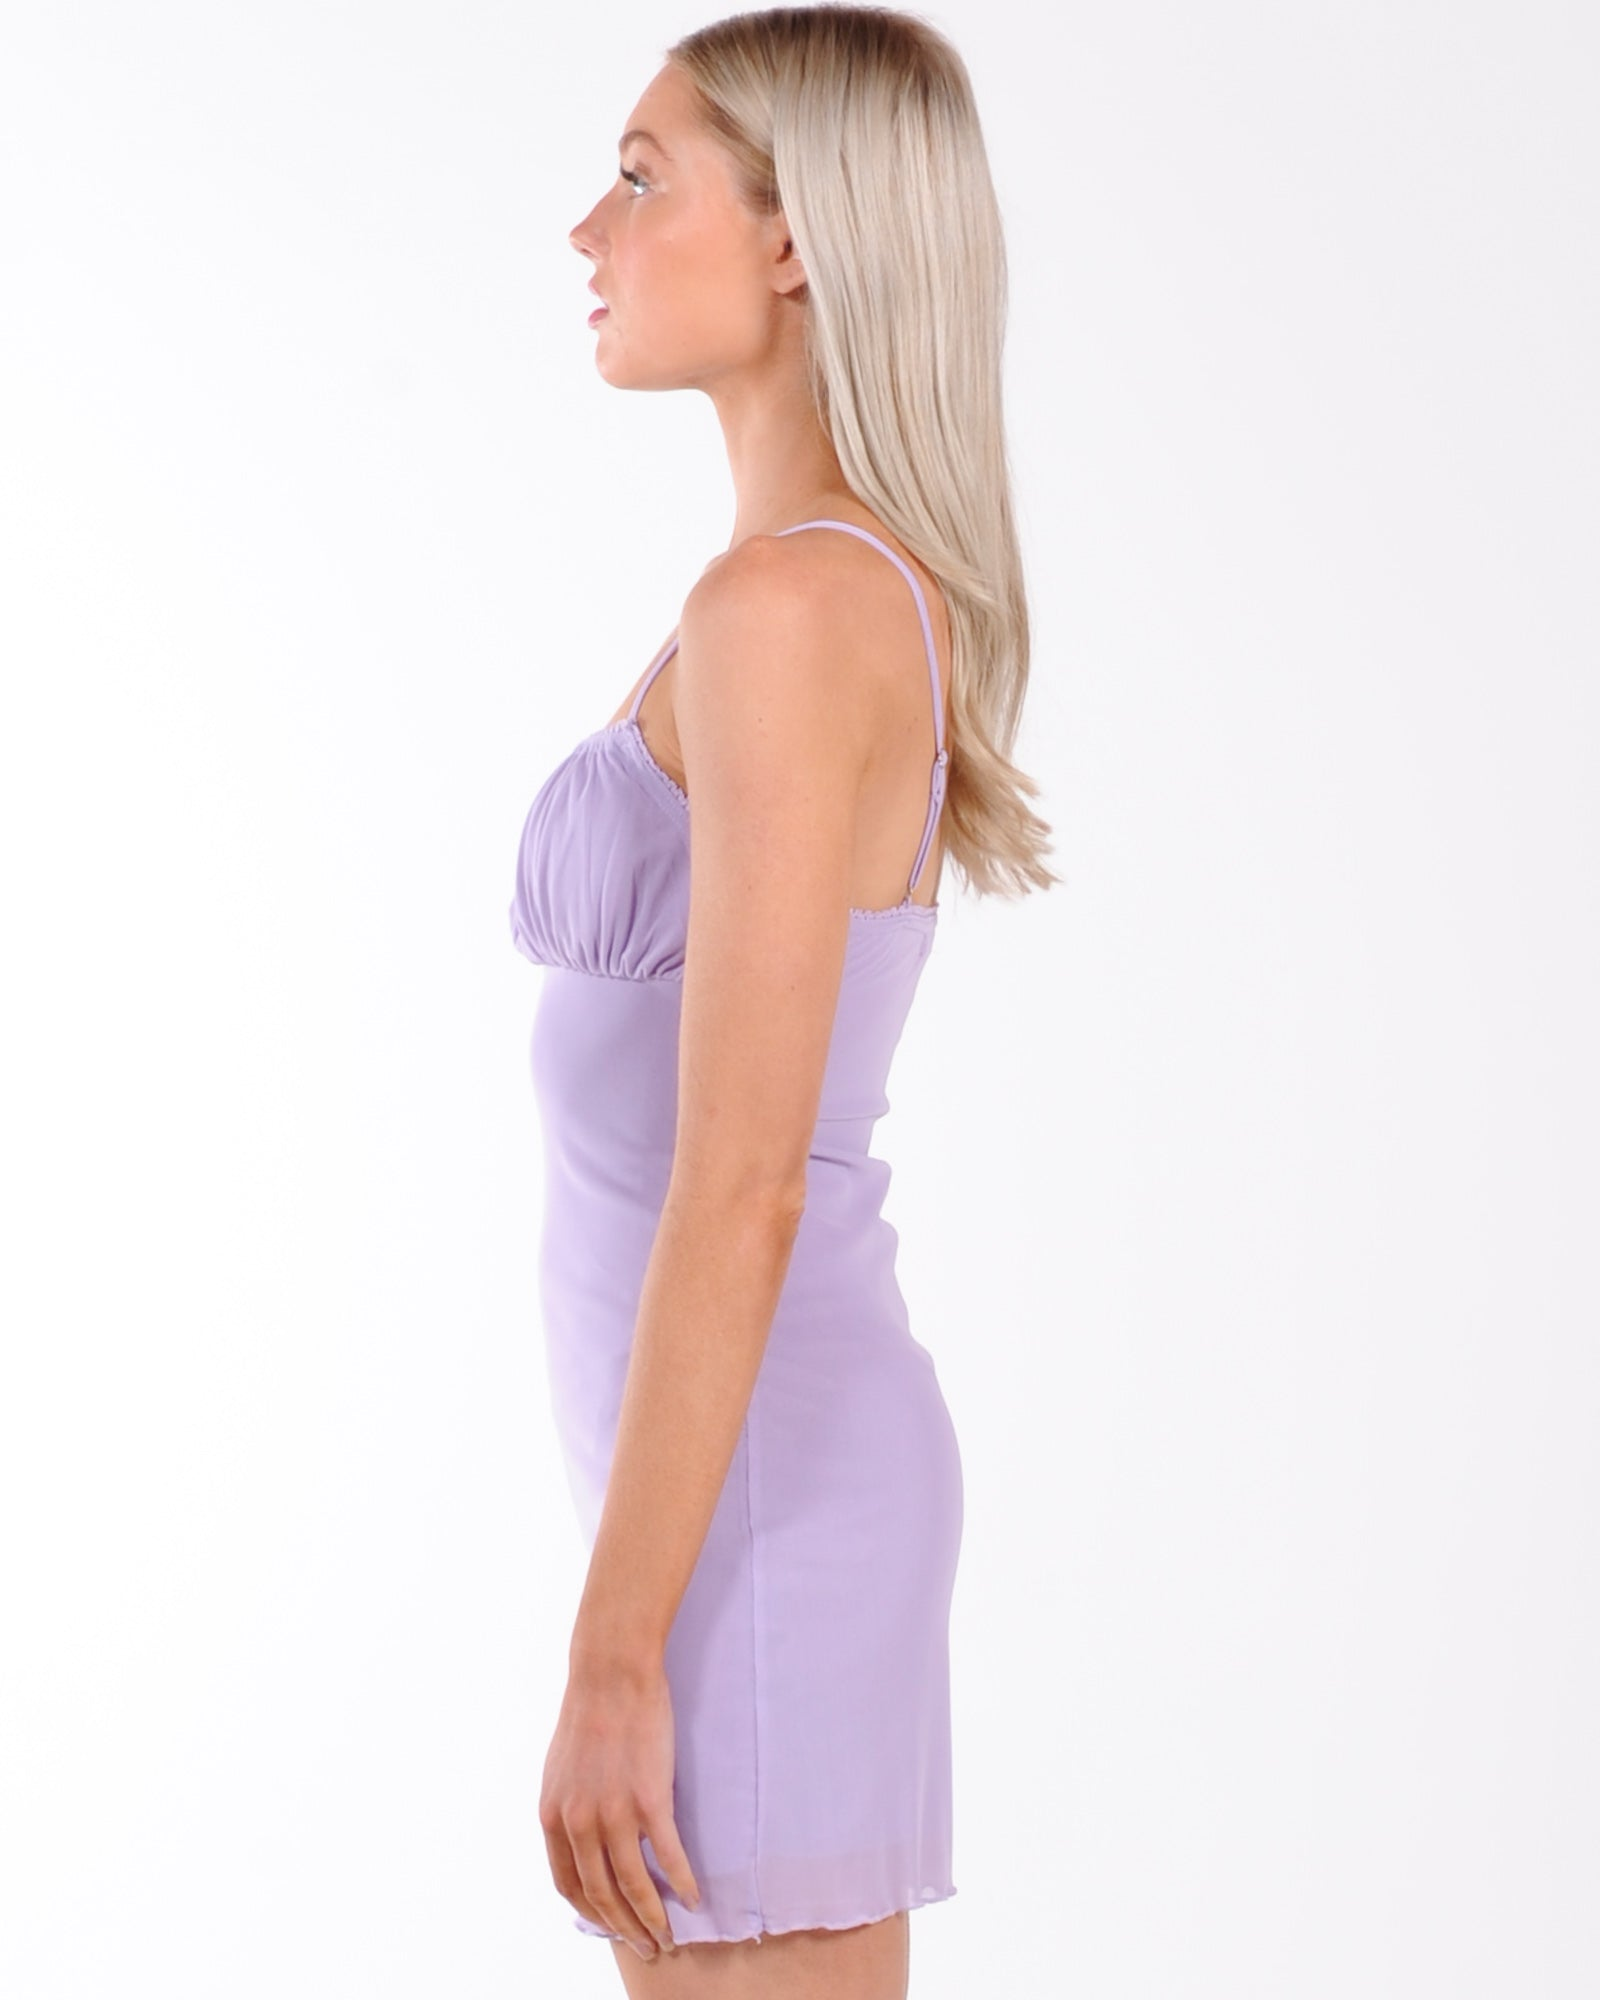 Girls Back In Town Dress - Lilac